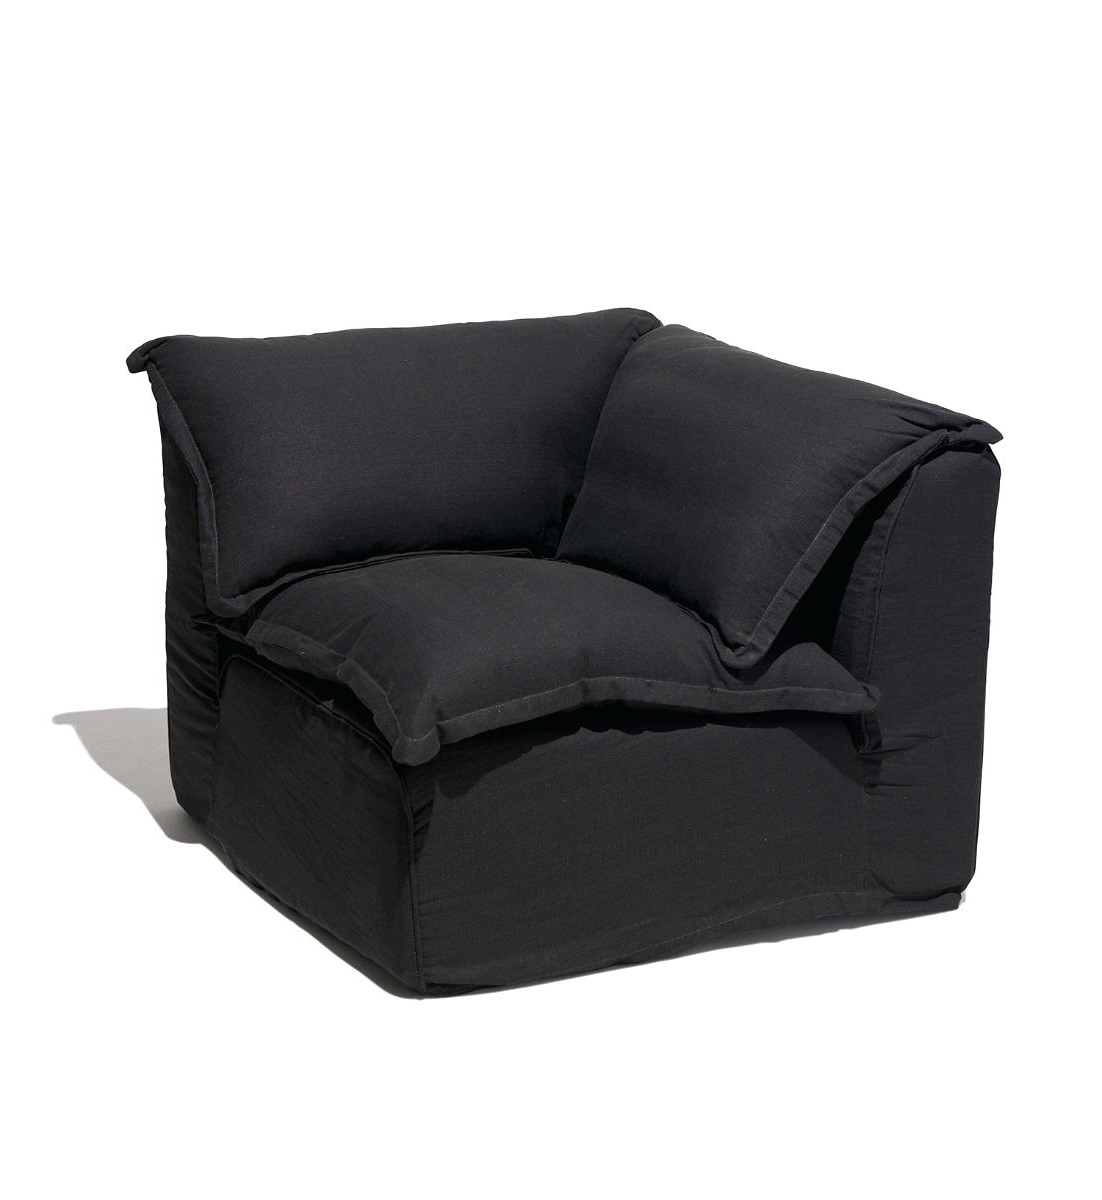 Widely Used Rocking Sofa Chairs With Regard To Living Room Furniture Chairs Sofa And 2 Table Fabric Rocking (View 15 of 15)